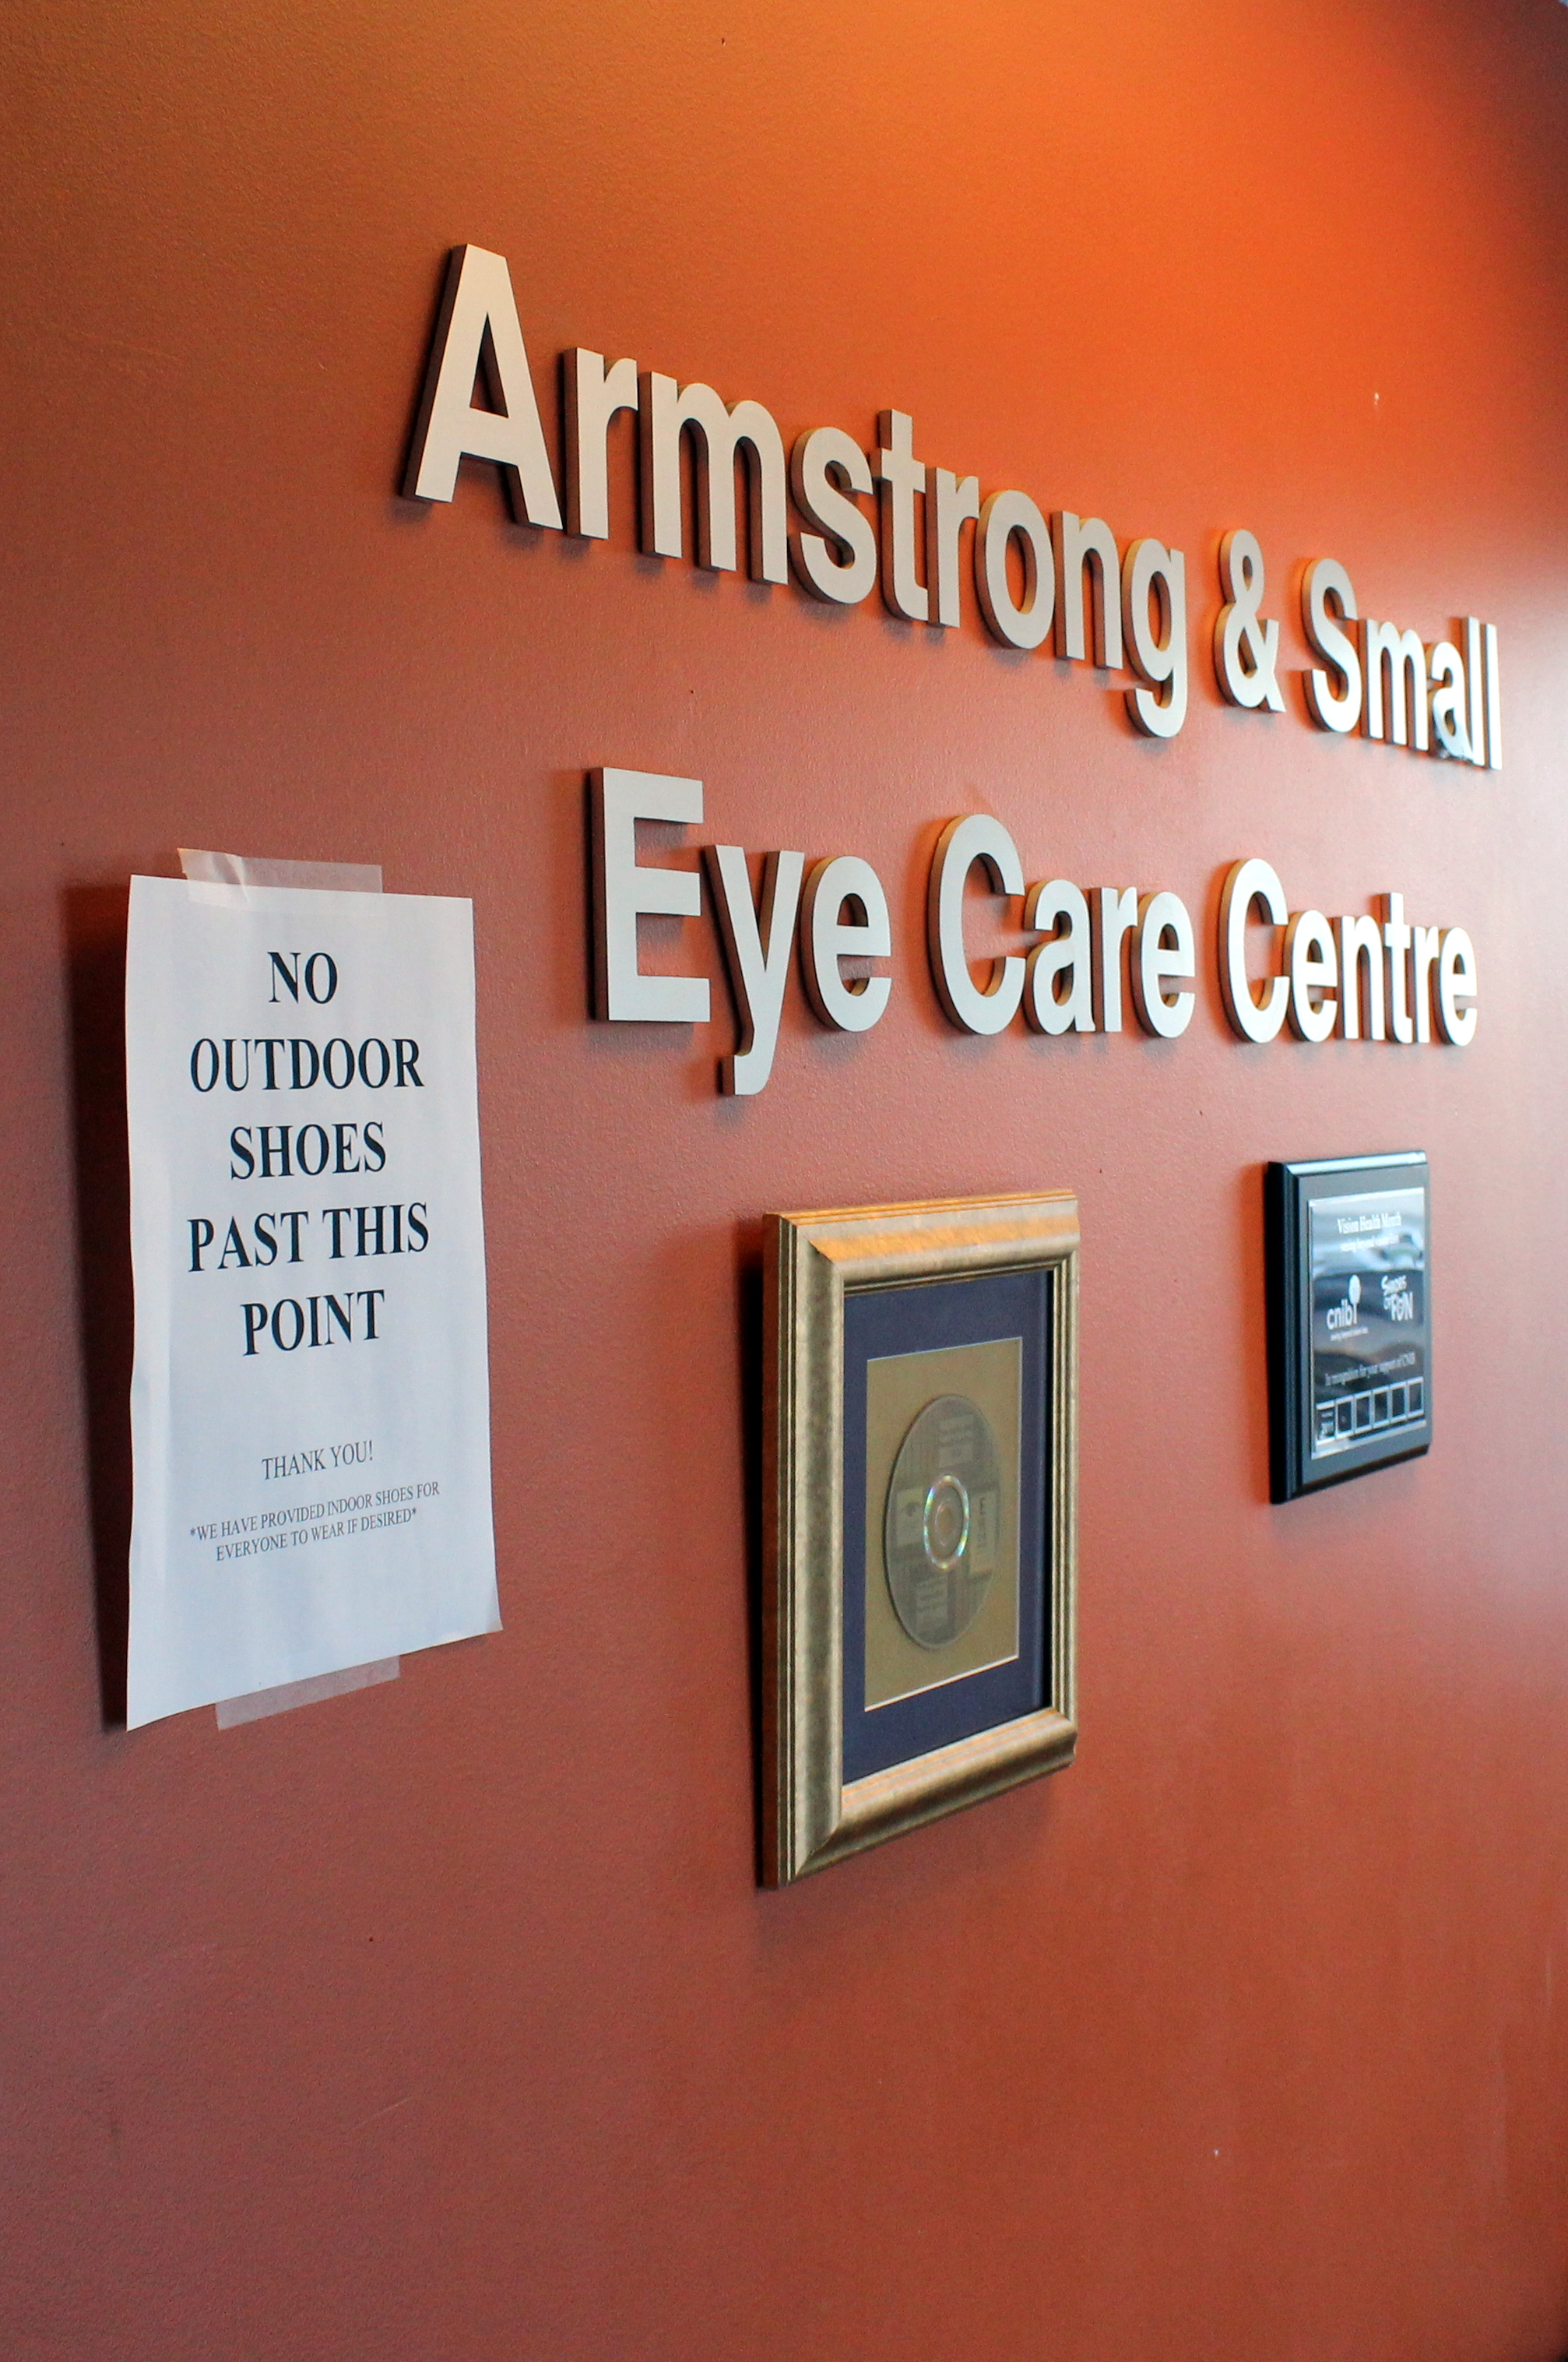 Armstrong & Small Eye Care Centre-0002